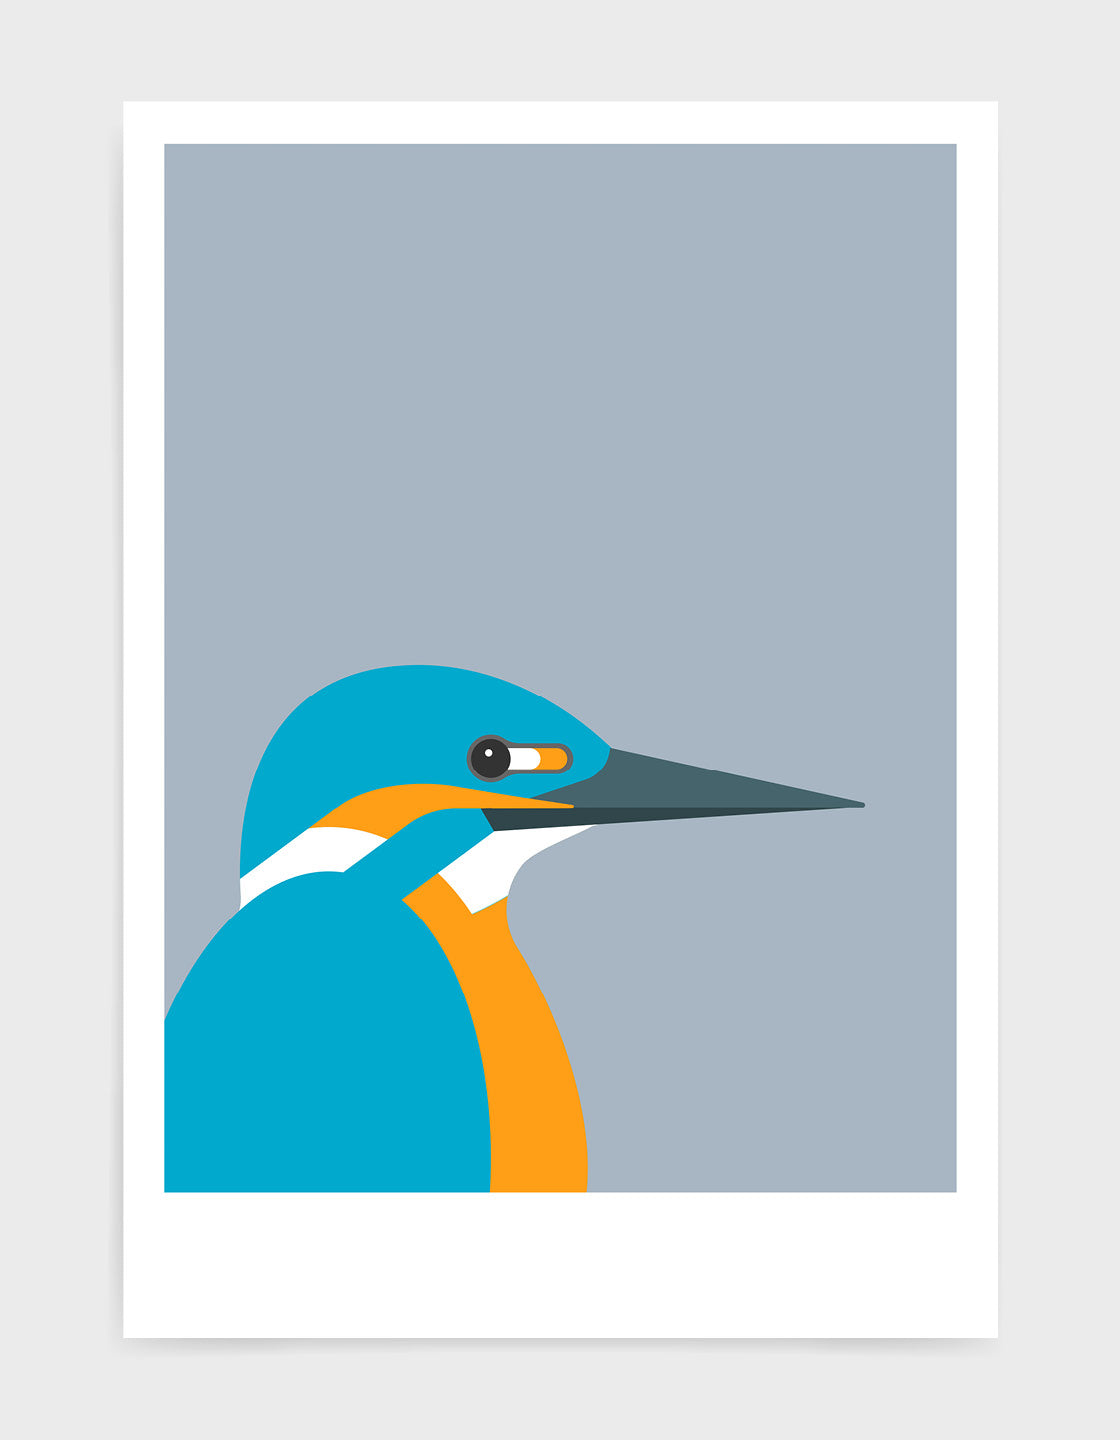 art print of a kingfisher bird against a light grey background